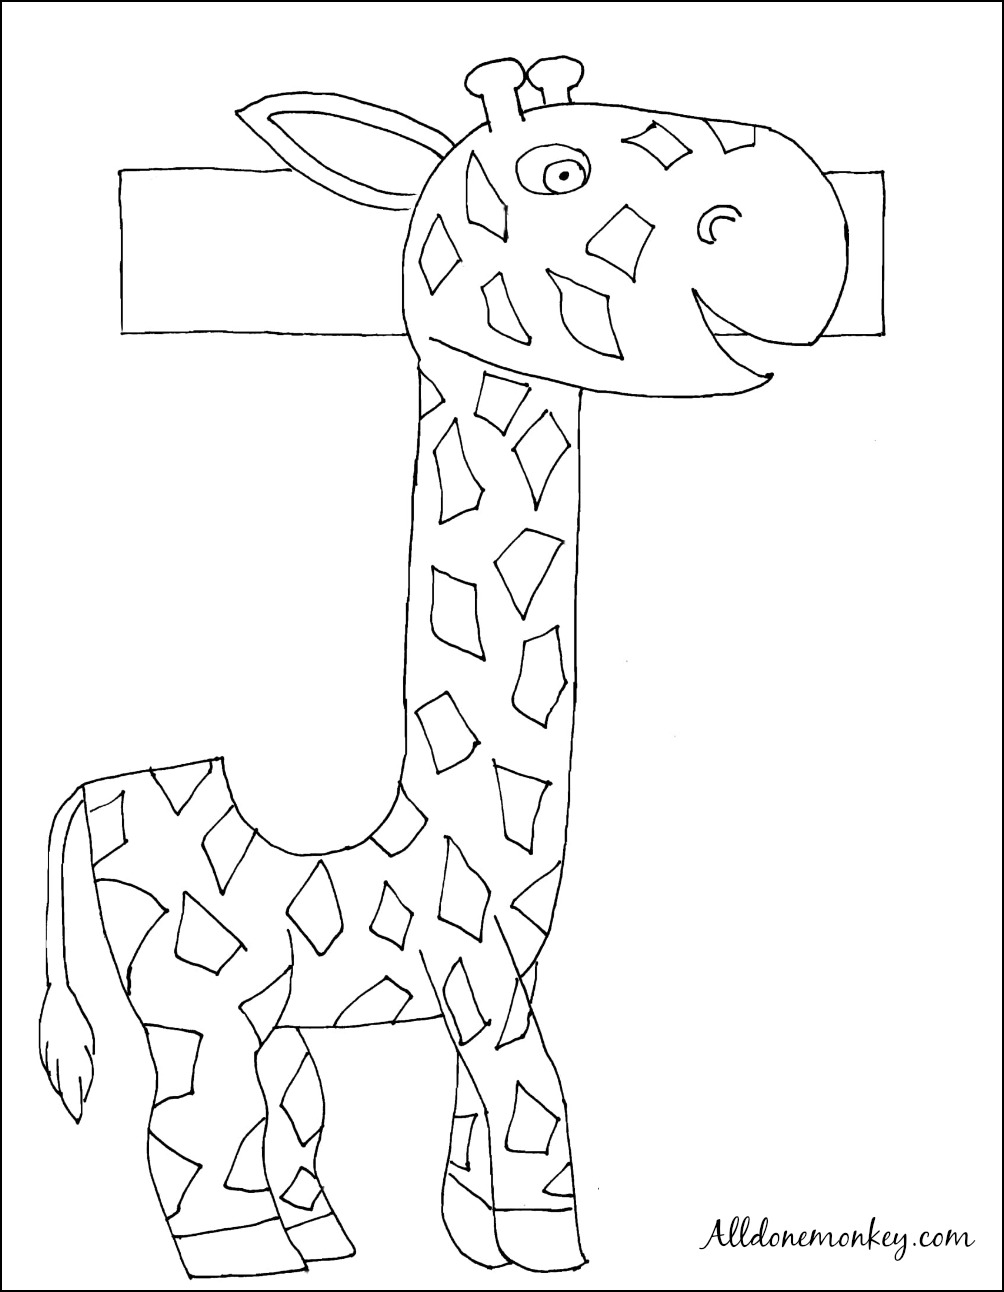 spanish coloring page: j es de jirafa - all done monkey